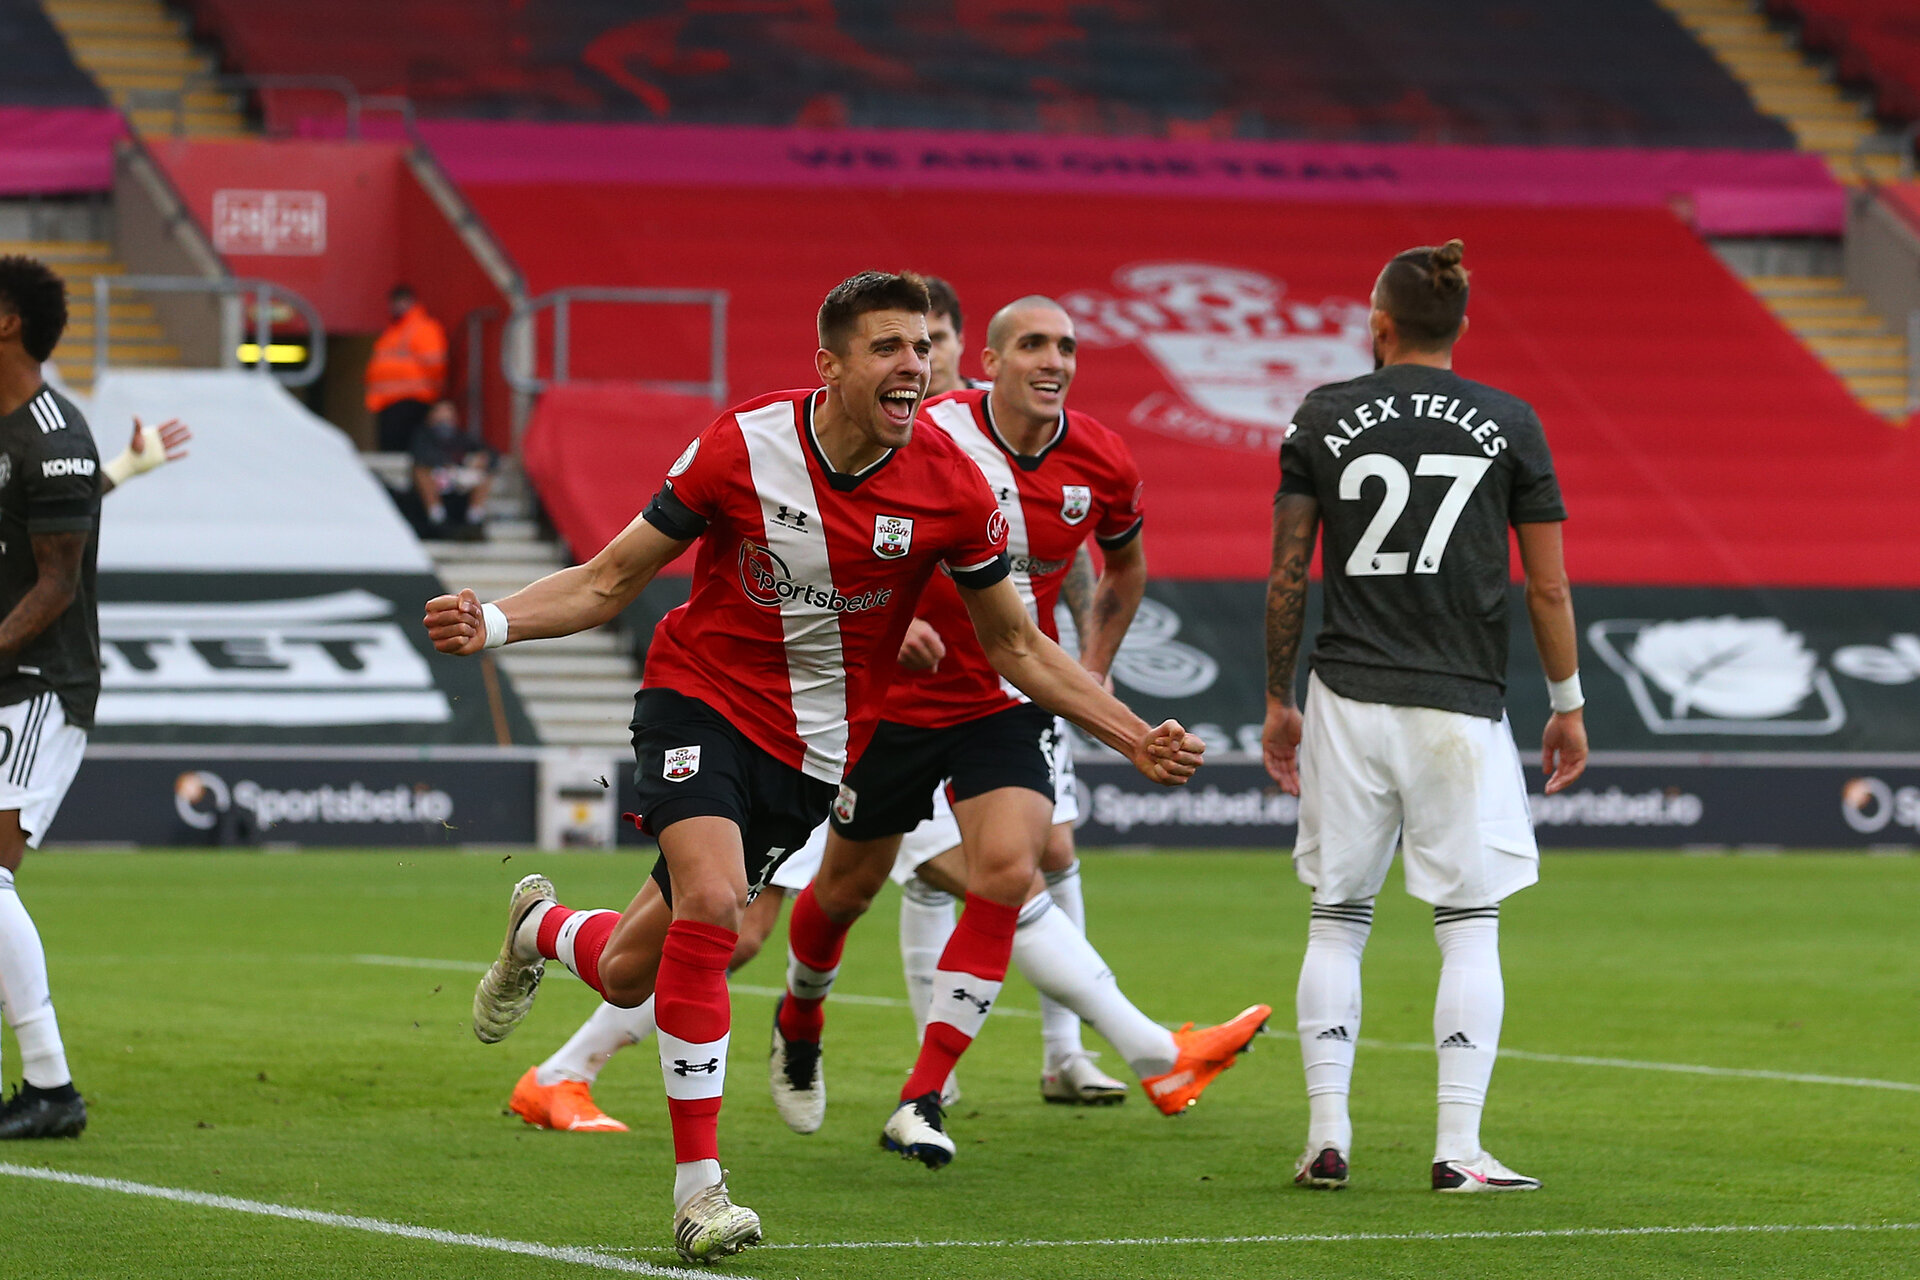 SOUTHAMPTON, ENGLAND - NOVEMBER 29: during the Premier League match between Southampton and Manchester United at St Mary's Stadium on November 29, 2020 in Southampton, England. Sporting stadiums around the UK remain under strict restrictions due to the Coronavirus Pandemic as Government social distancing laws prohibit fans inside venues resulting in games being played behind closed doors. (Photo by Matt Watson/Southampton FC via Getty Images)